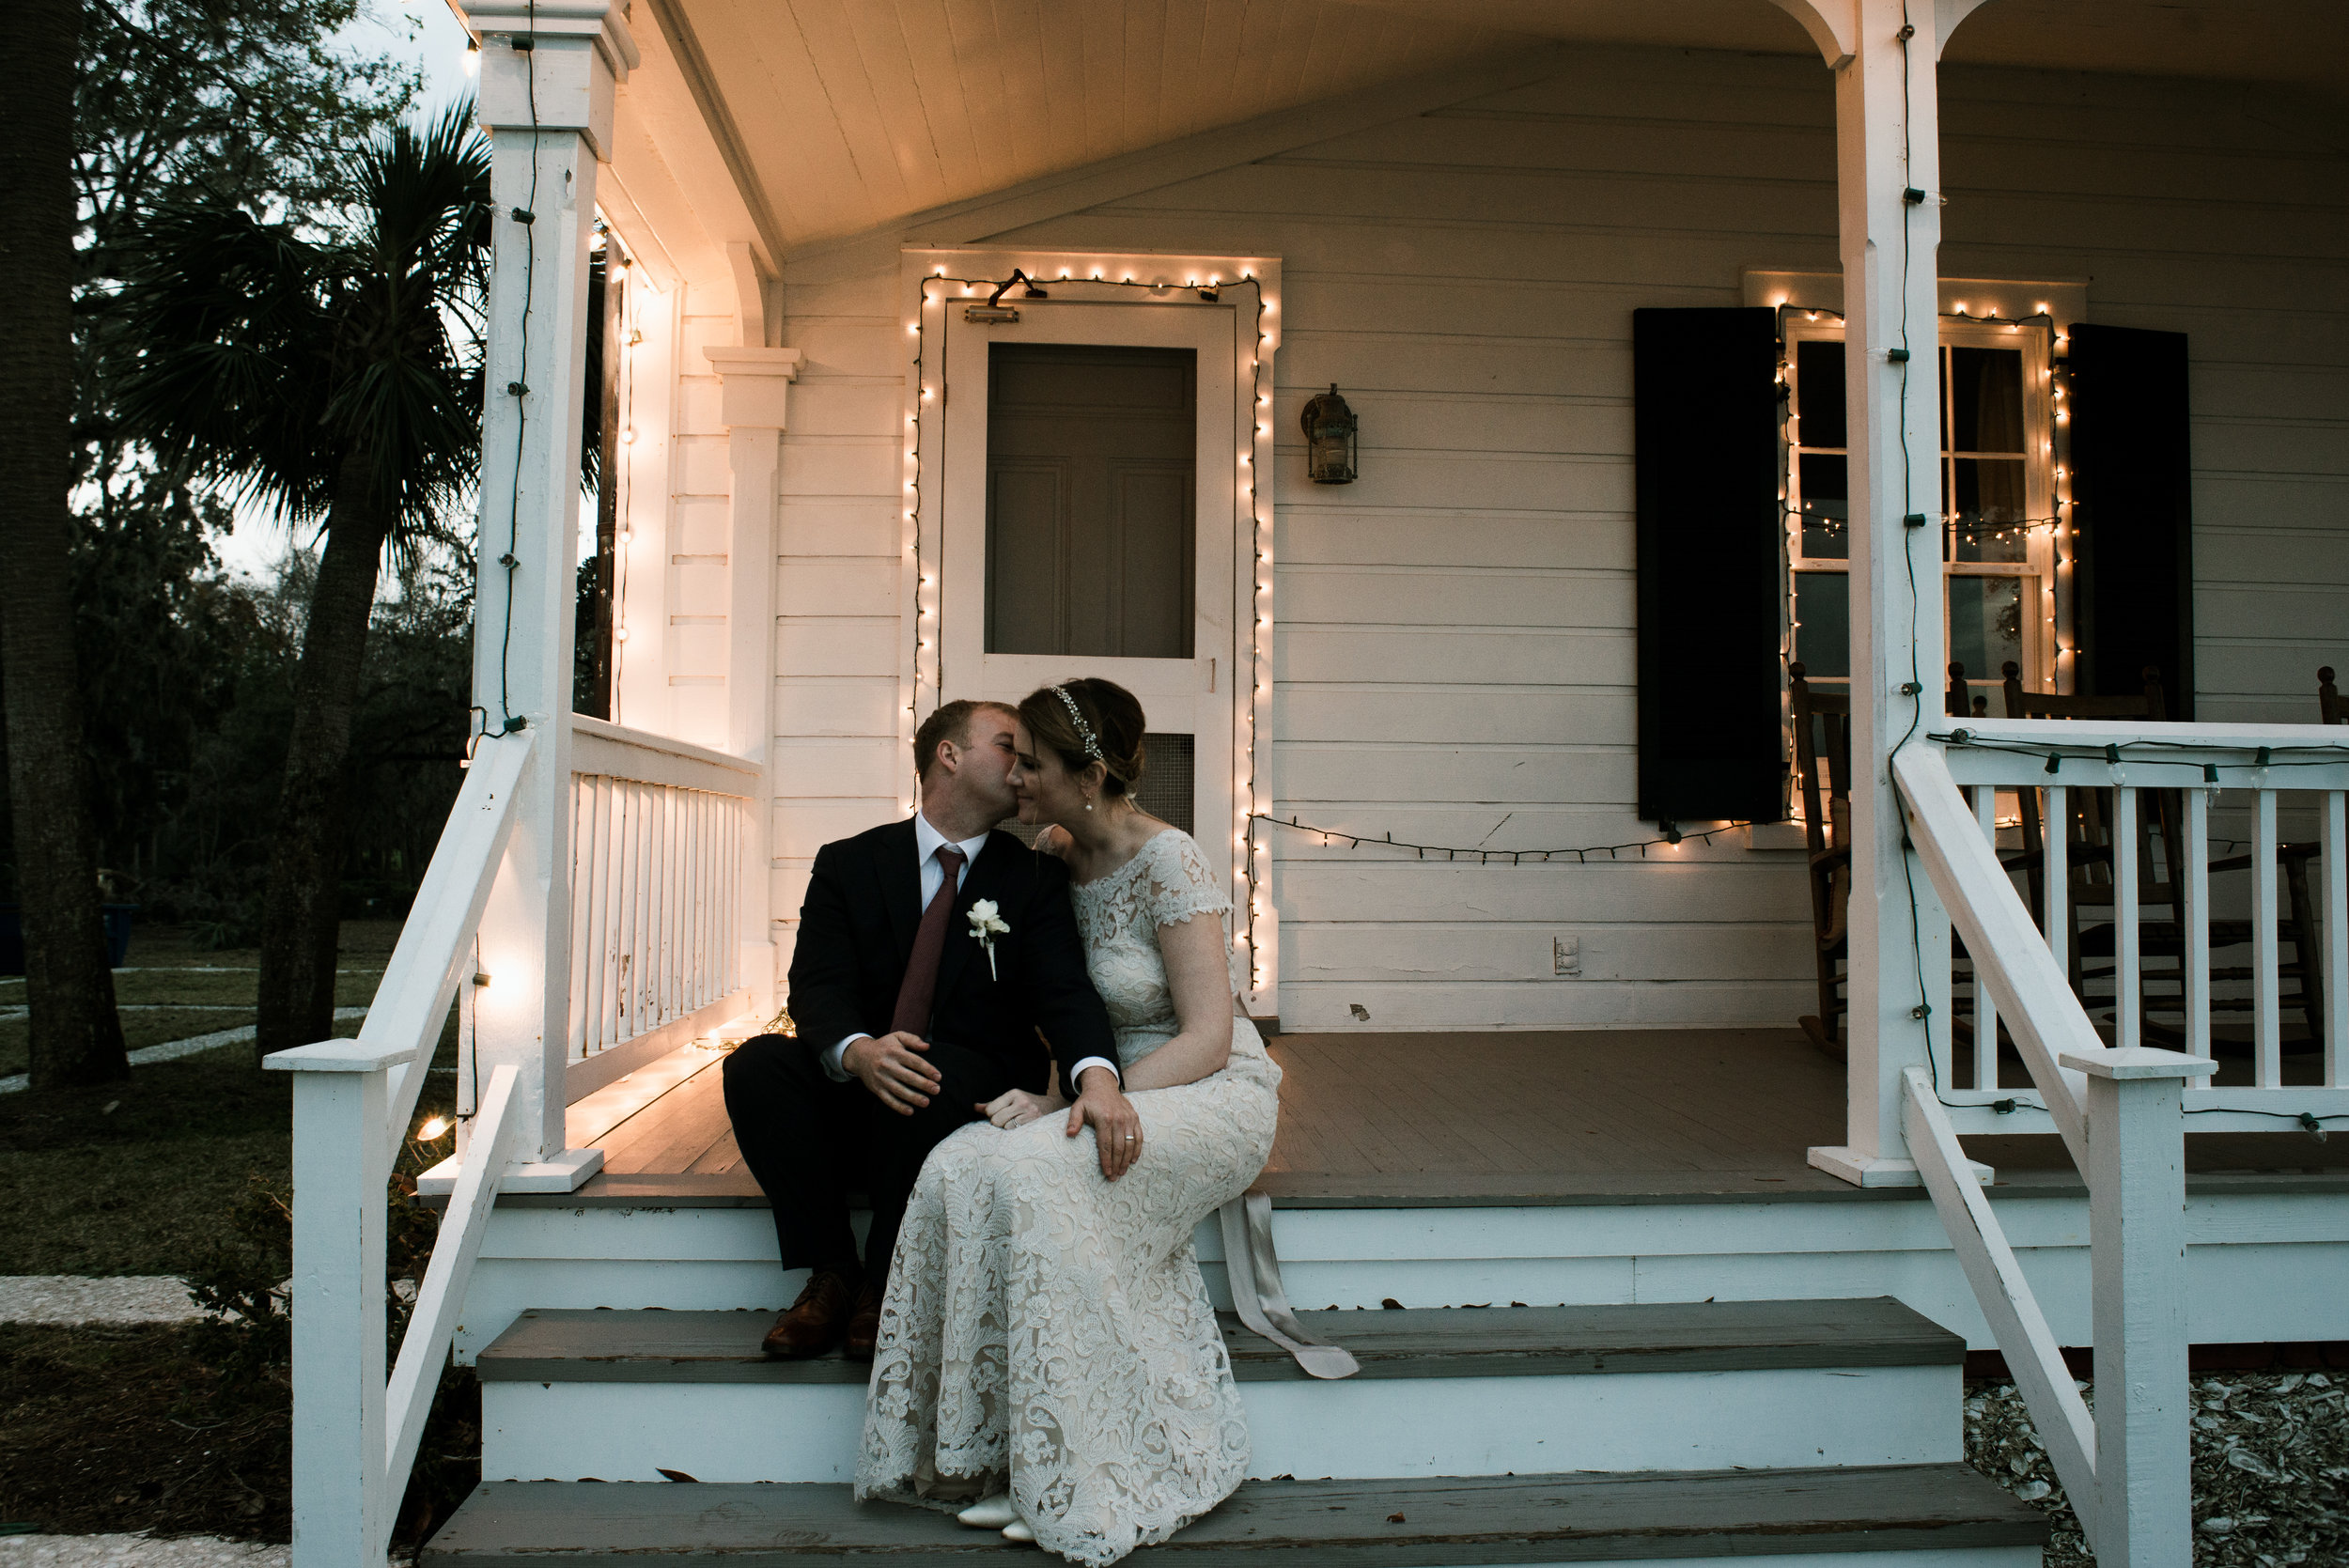 emily-and-david-daufuskie-island-wedding-december-wedding-meg-hill-photo- (184 of 728).jpg